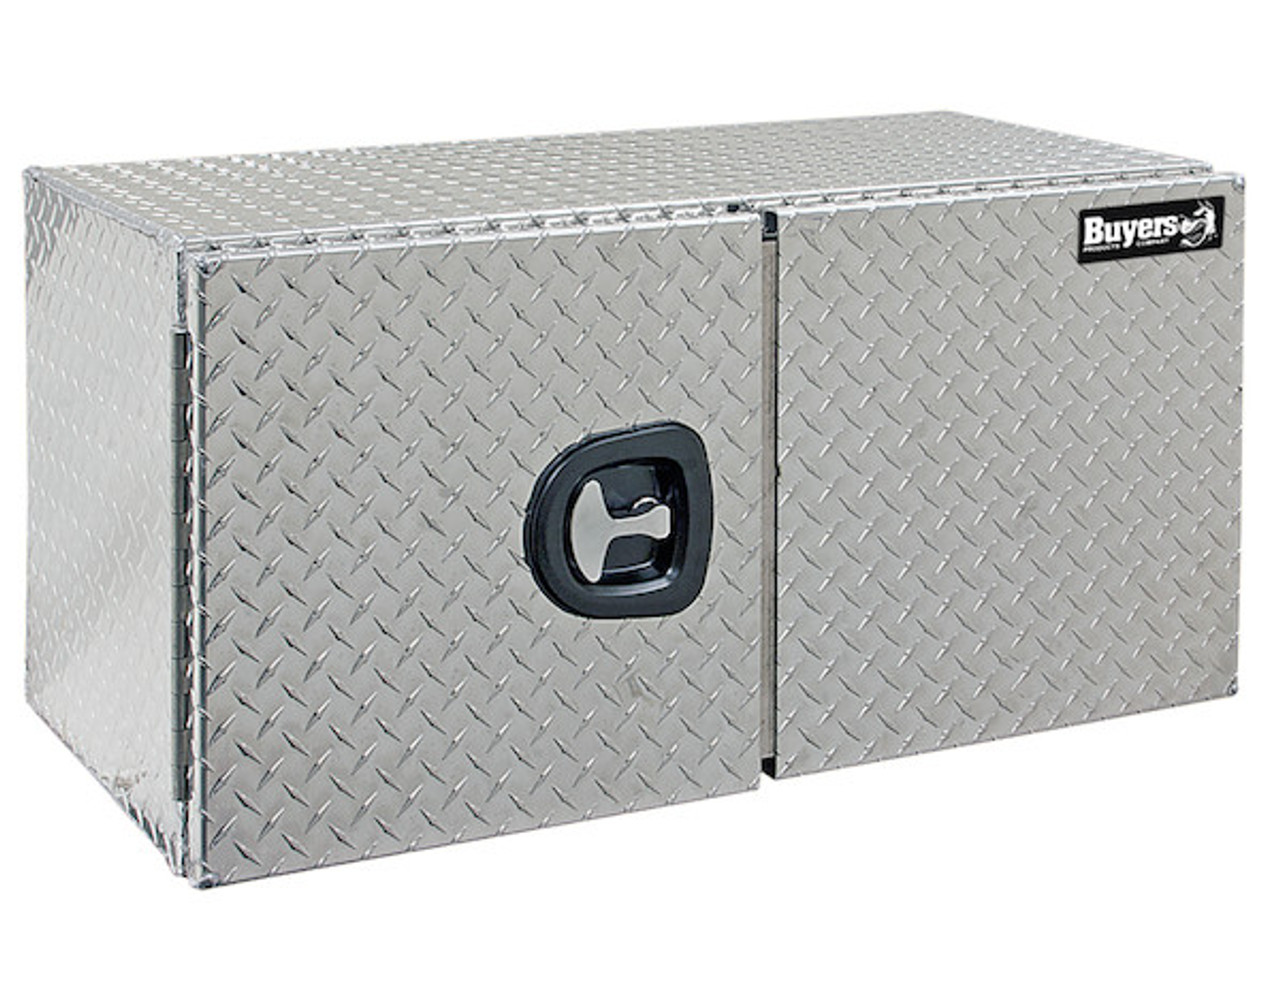 "1705205 BUYERS PRODUCTS DIAMOND TREAD ALUMINUM UNDERBODY TRUCK TOOLBOX WITH BARN DOOR 18""HX18""DX36""W"